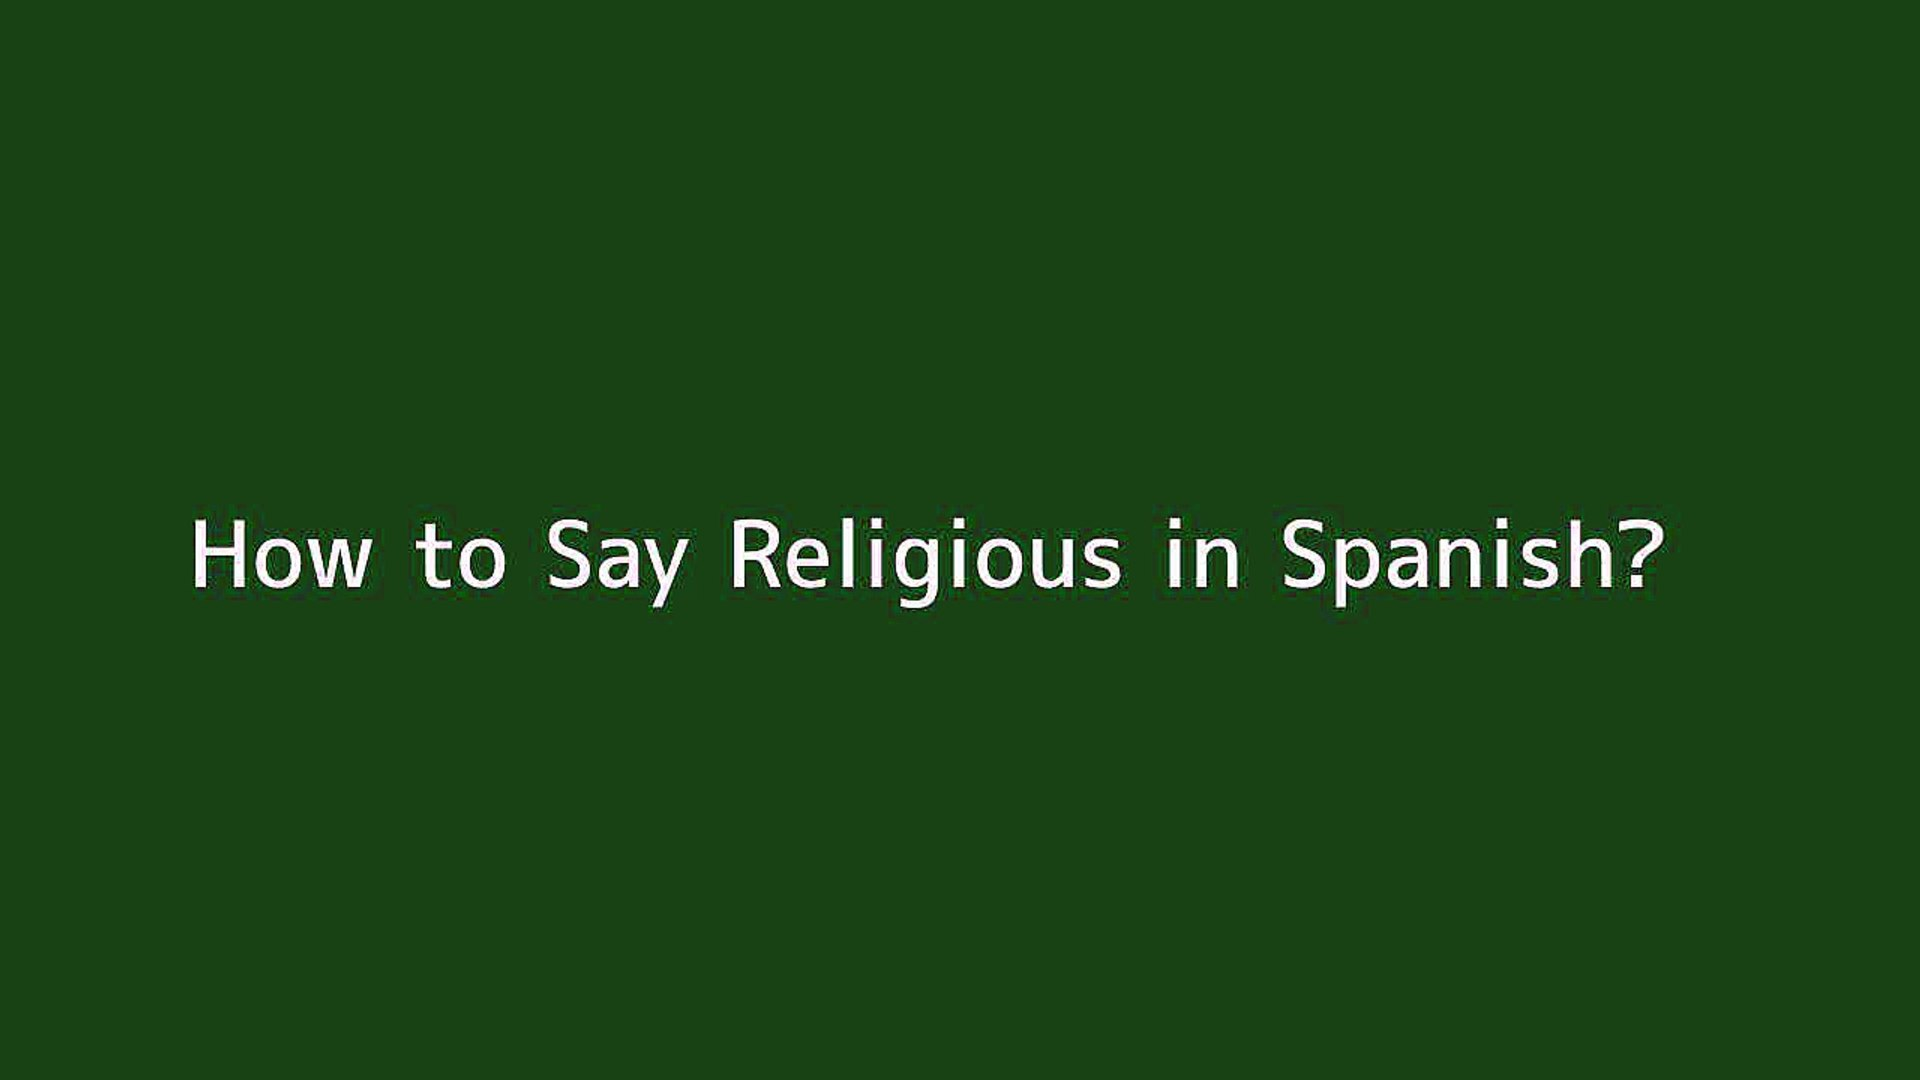 How to say Religious in Spanish